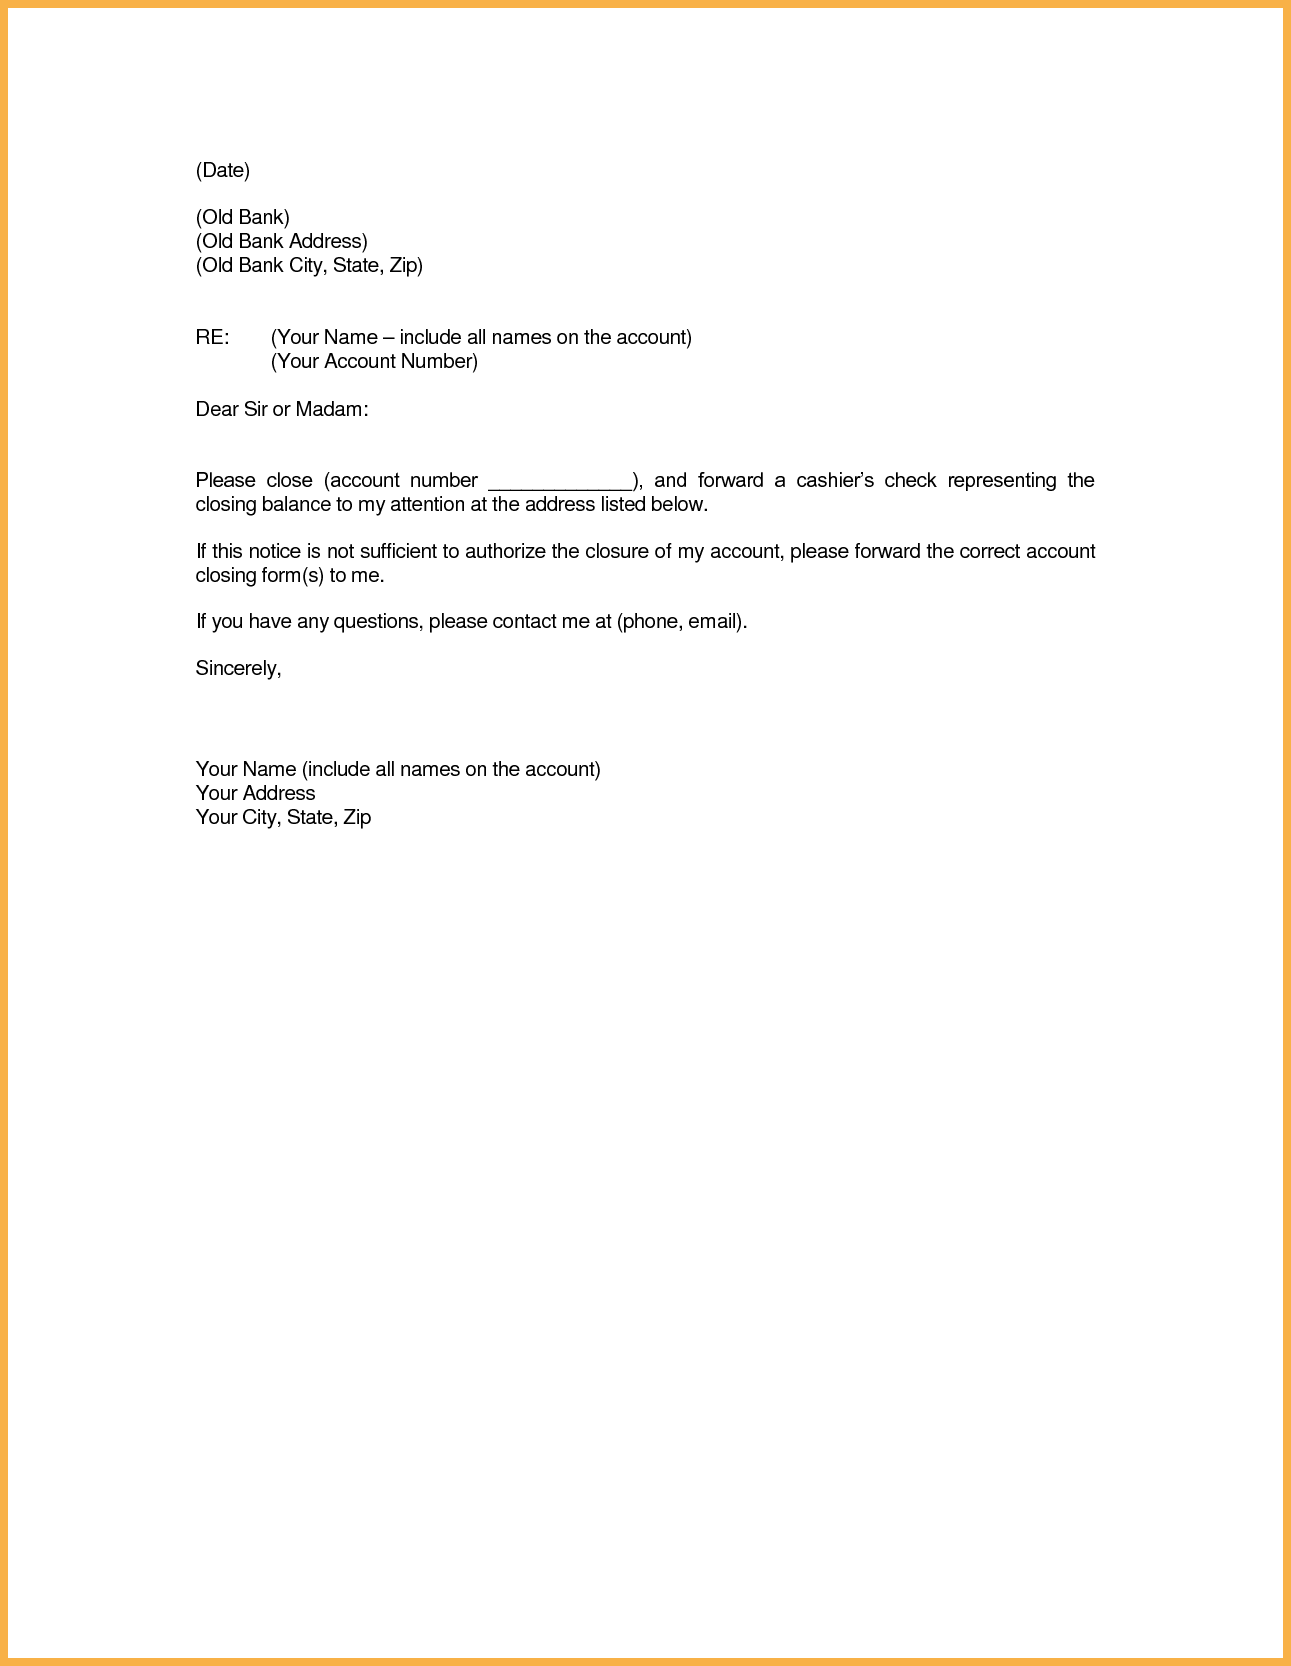 Account paid full letter close bank template closing format sample account paid full letter close bank template closing format sample cover templates spiritdancerdesigns Gallery